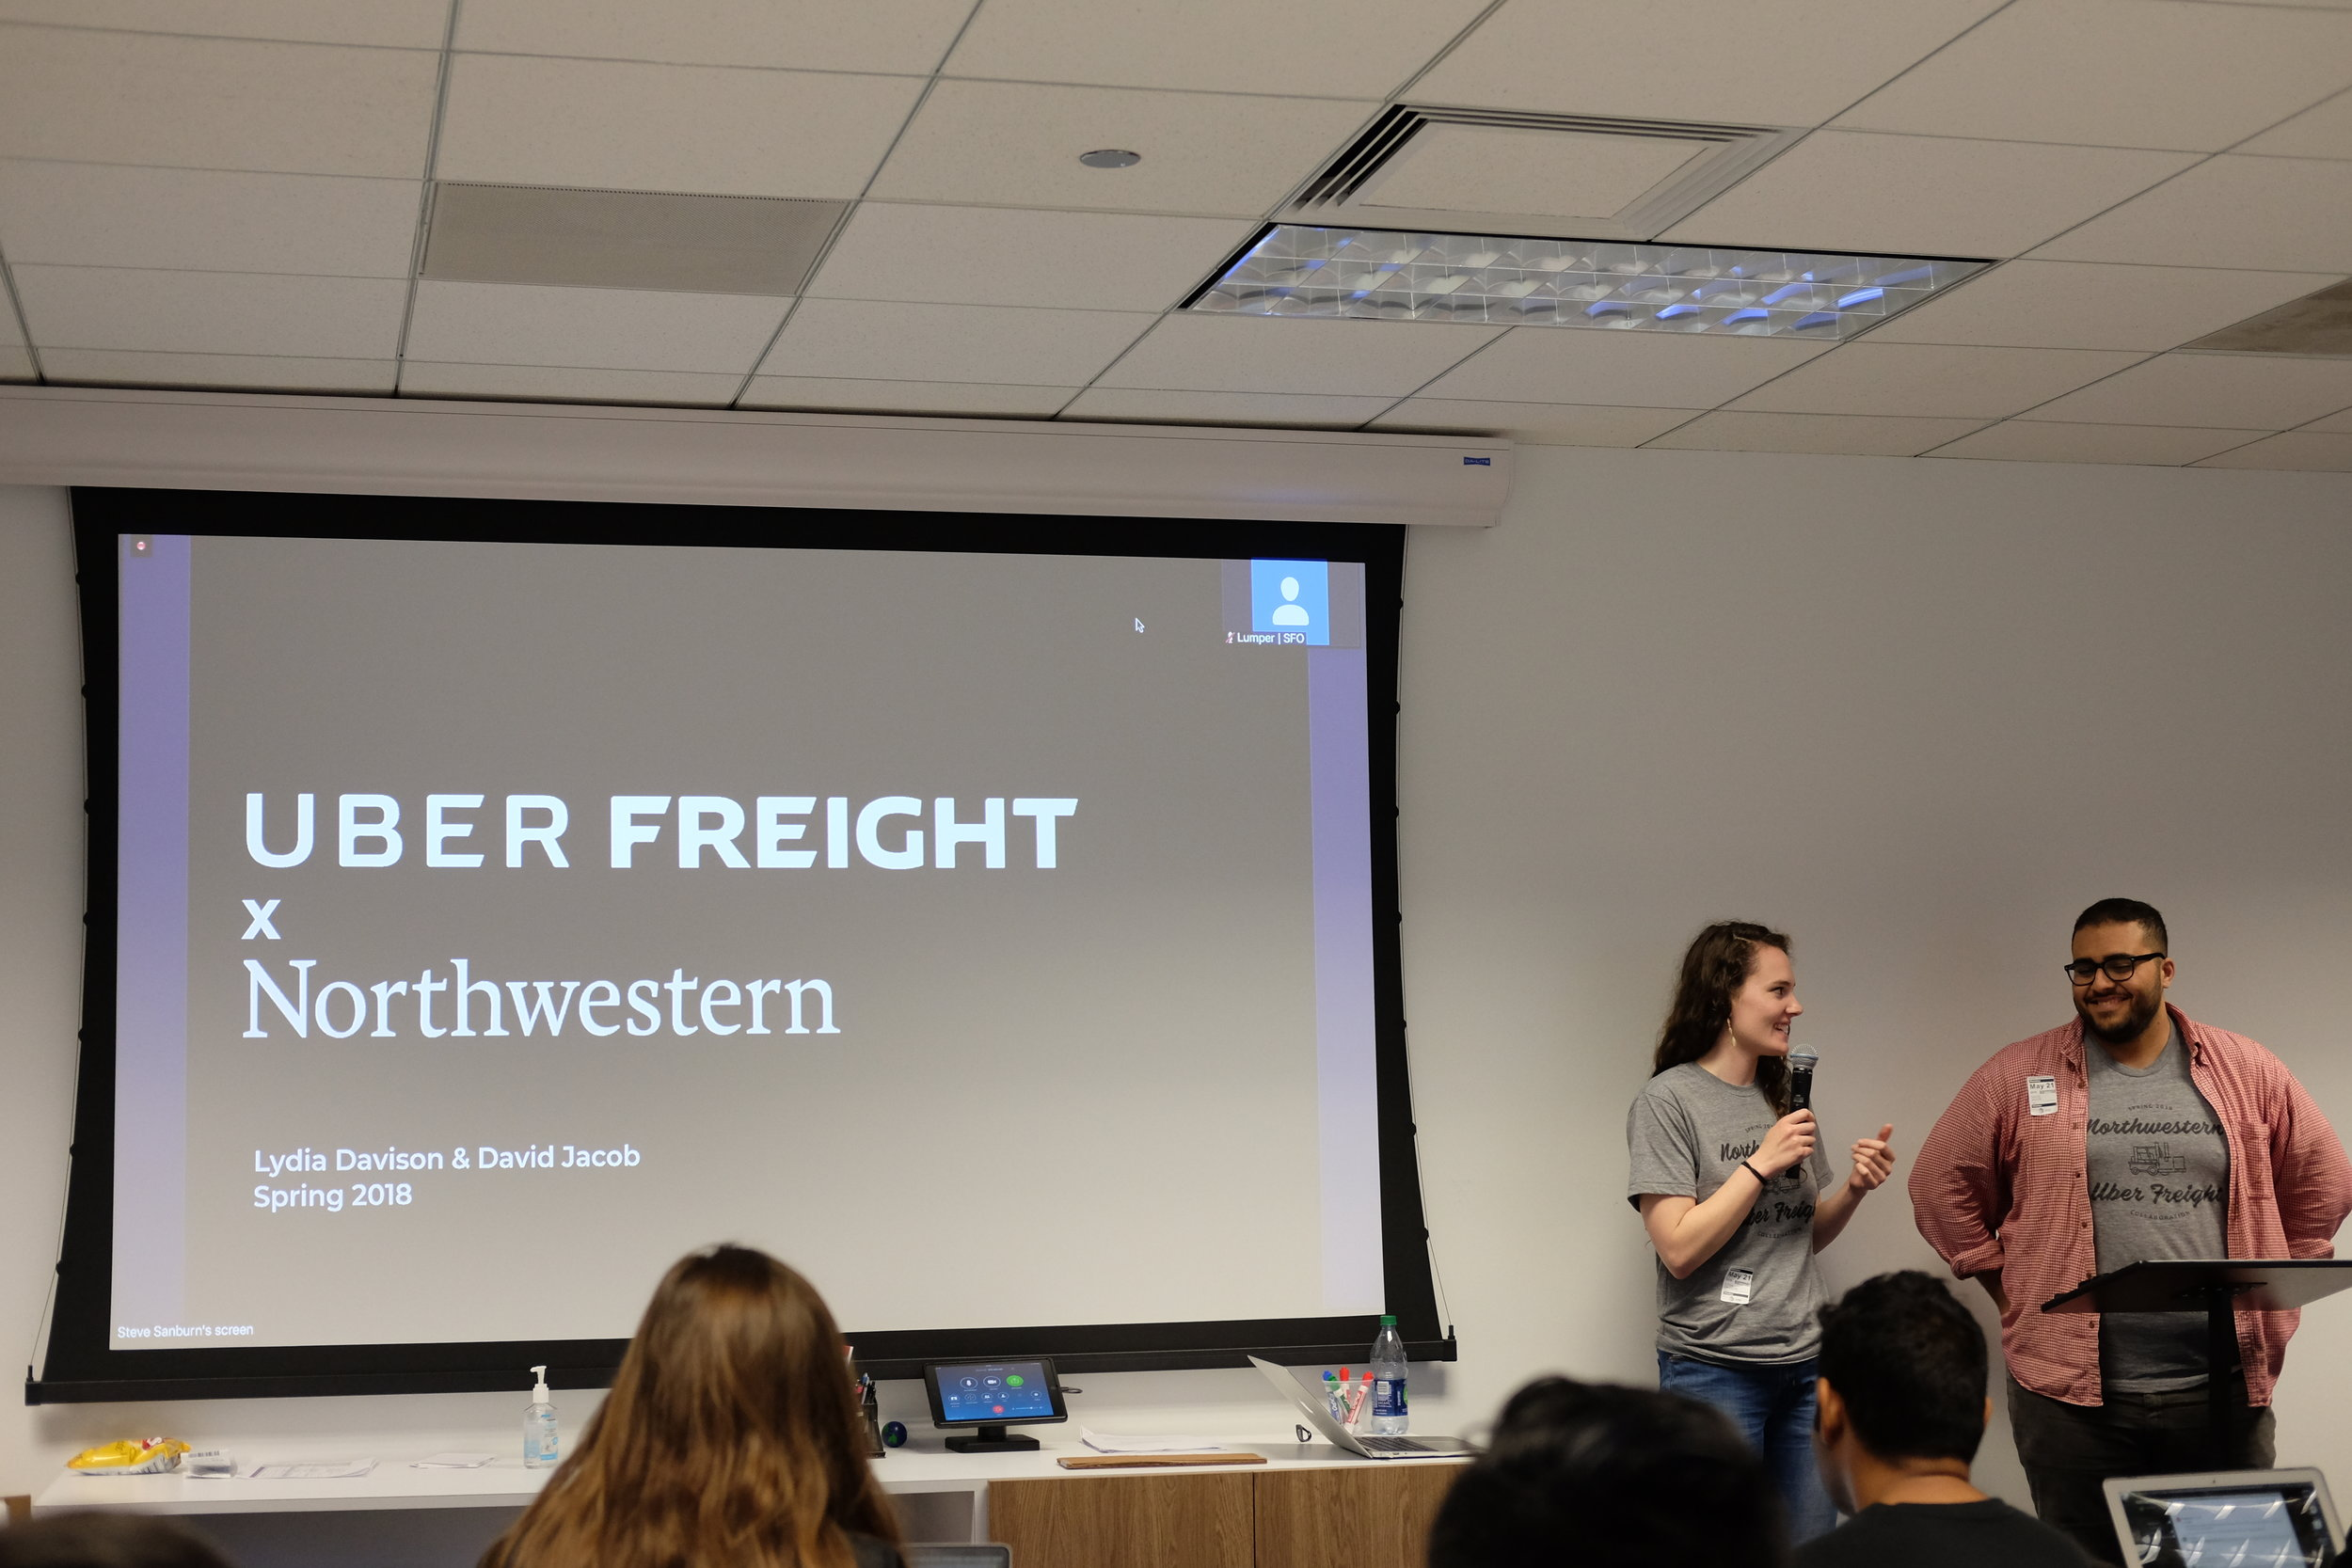 Presenting at Uber Freight